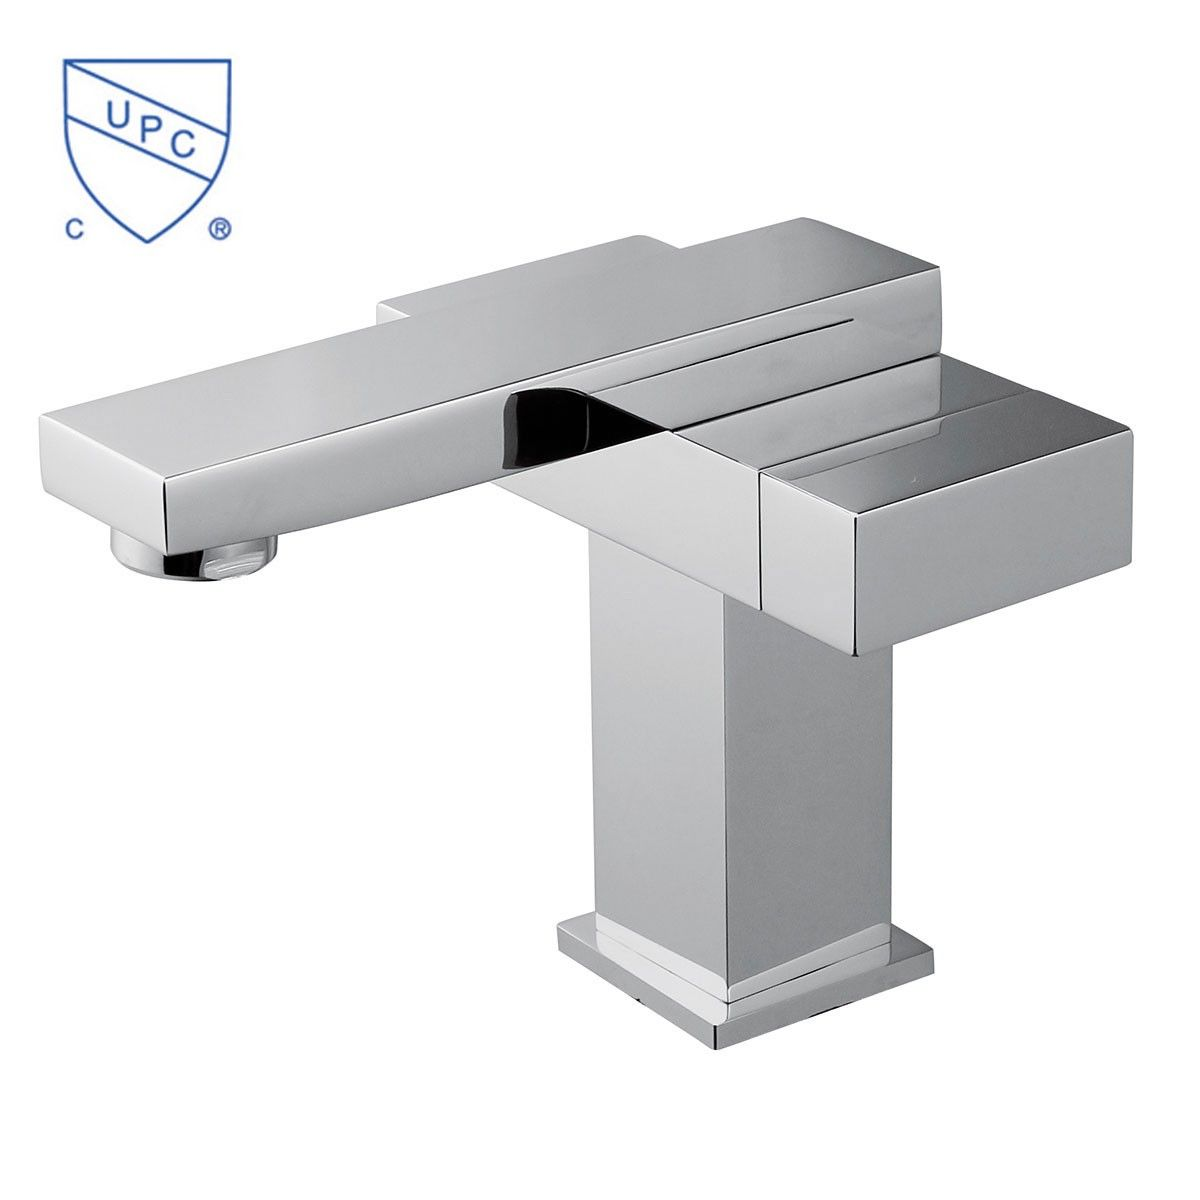 Lavabo double vasque retro faucet single hole double lever brass with chrom - Lavabo double vasque retro ...